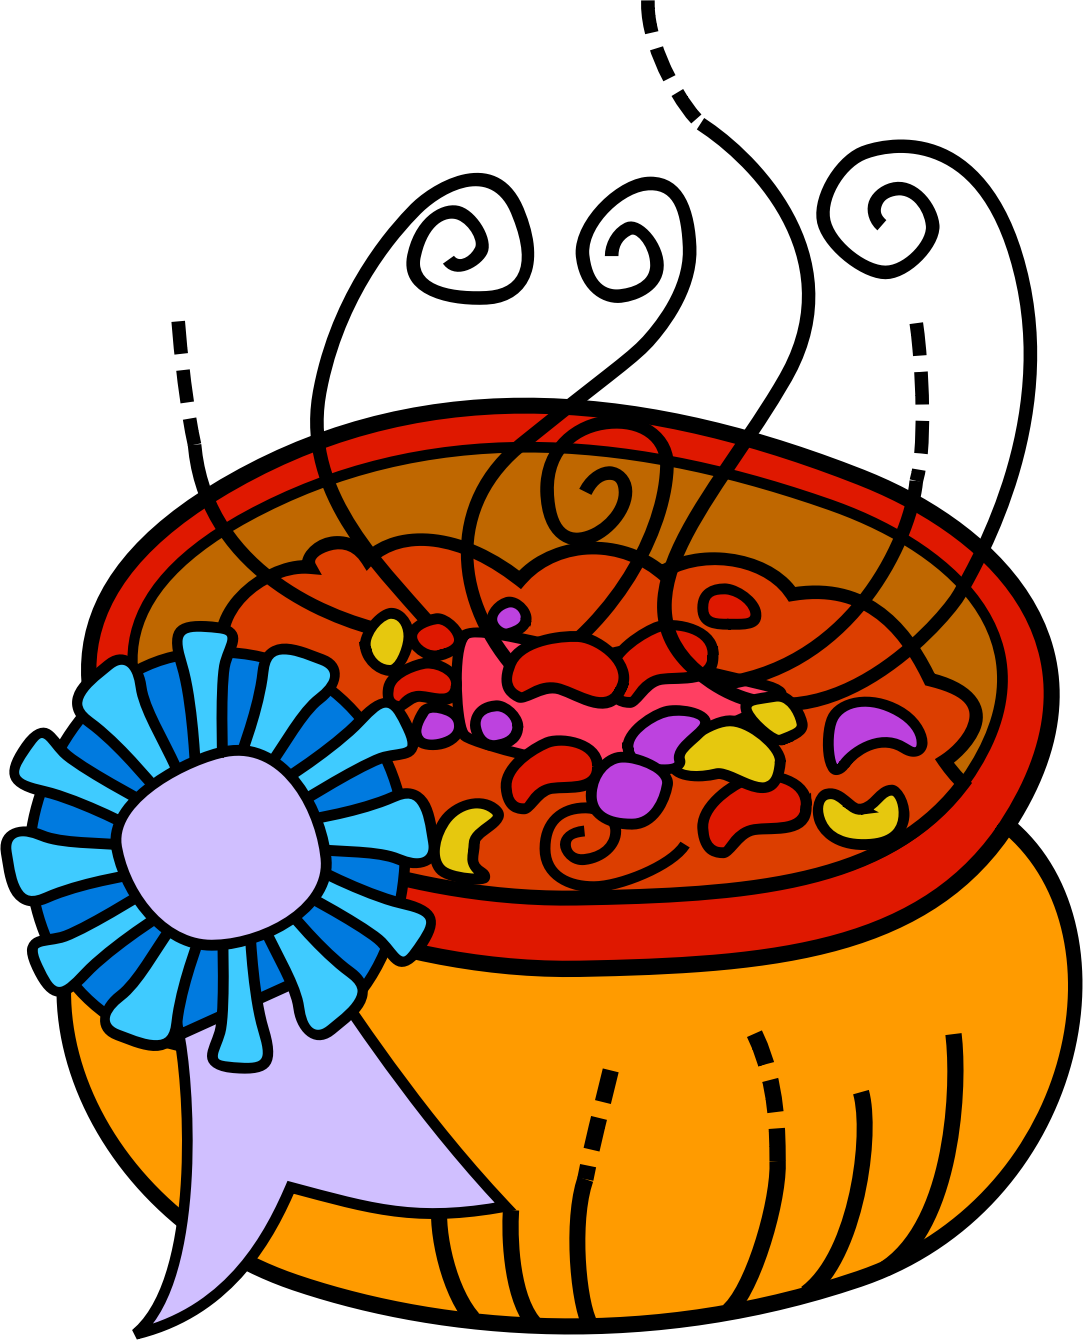 Prize winning chili big. Winter clipart soup